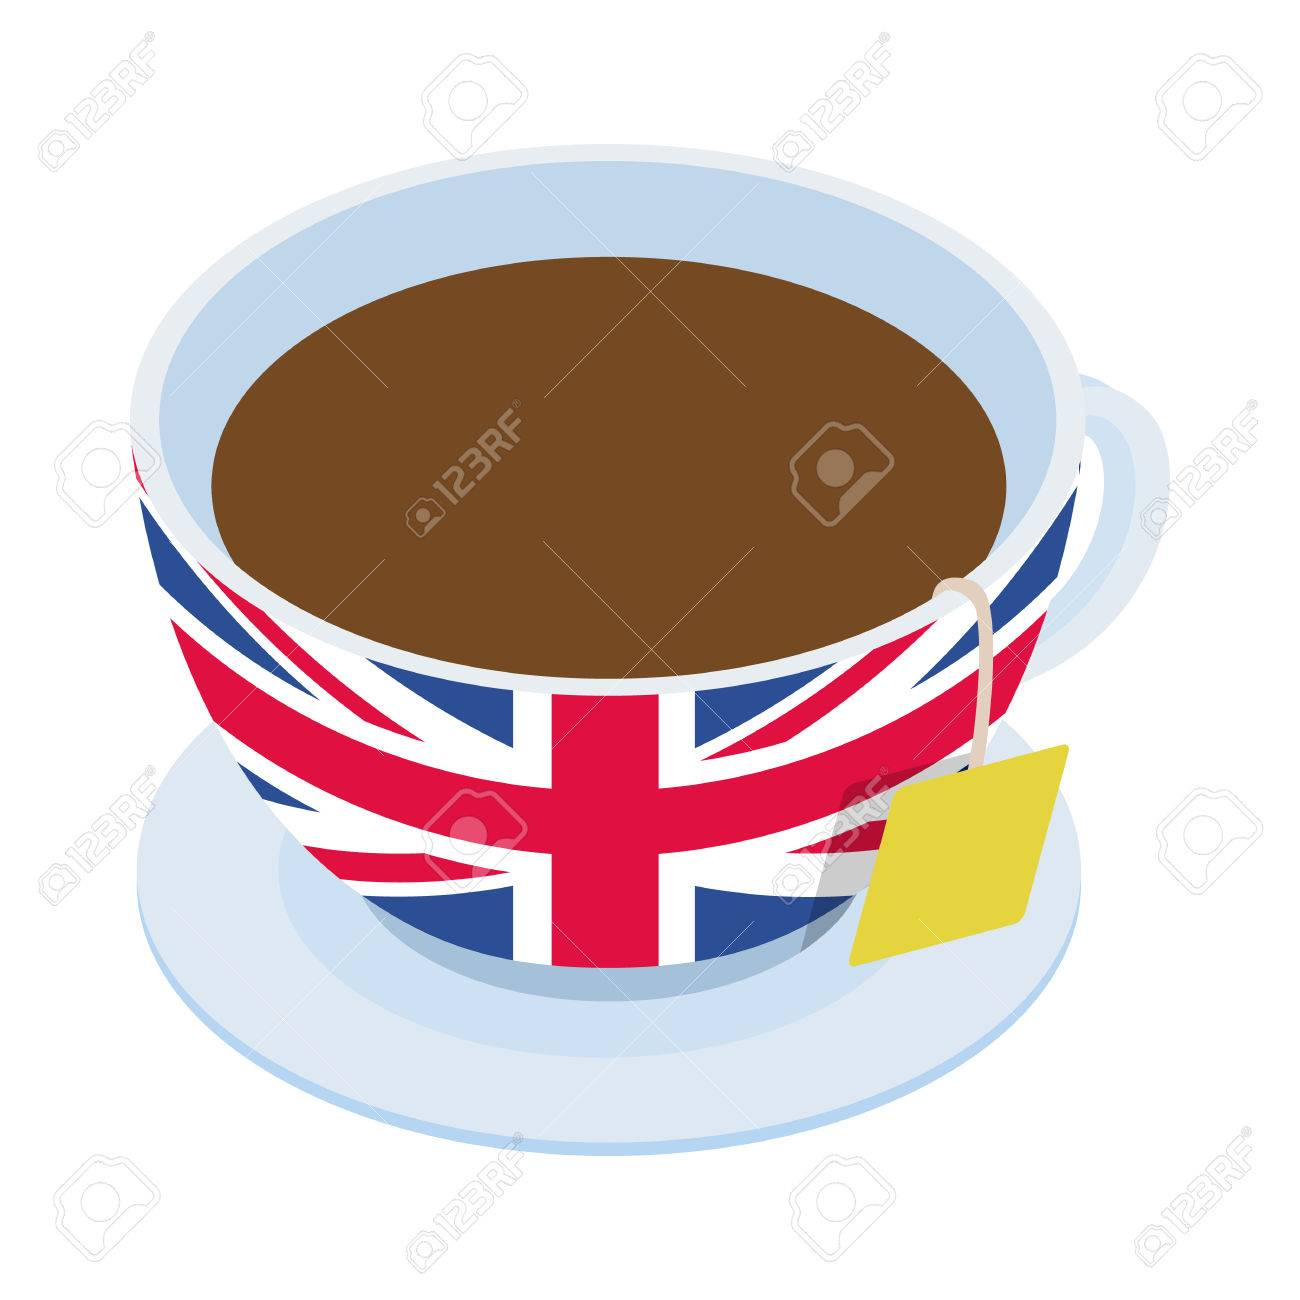 British tea cup icon in isometric 3d style on a white background.